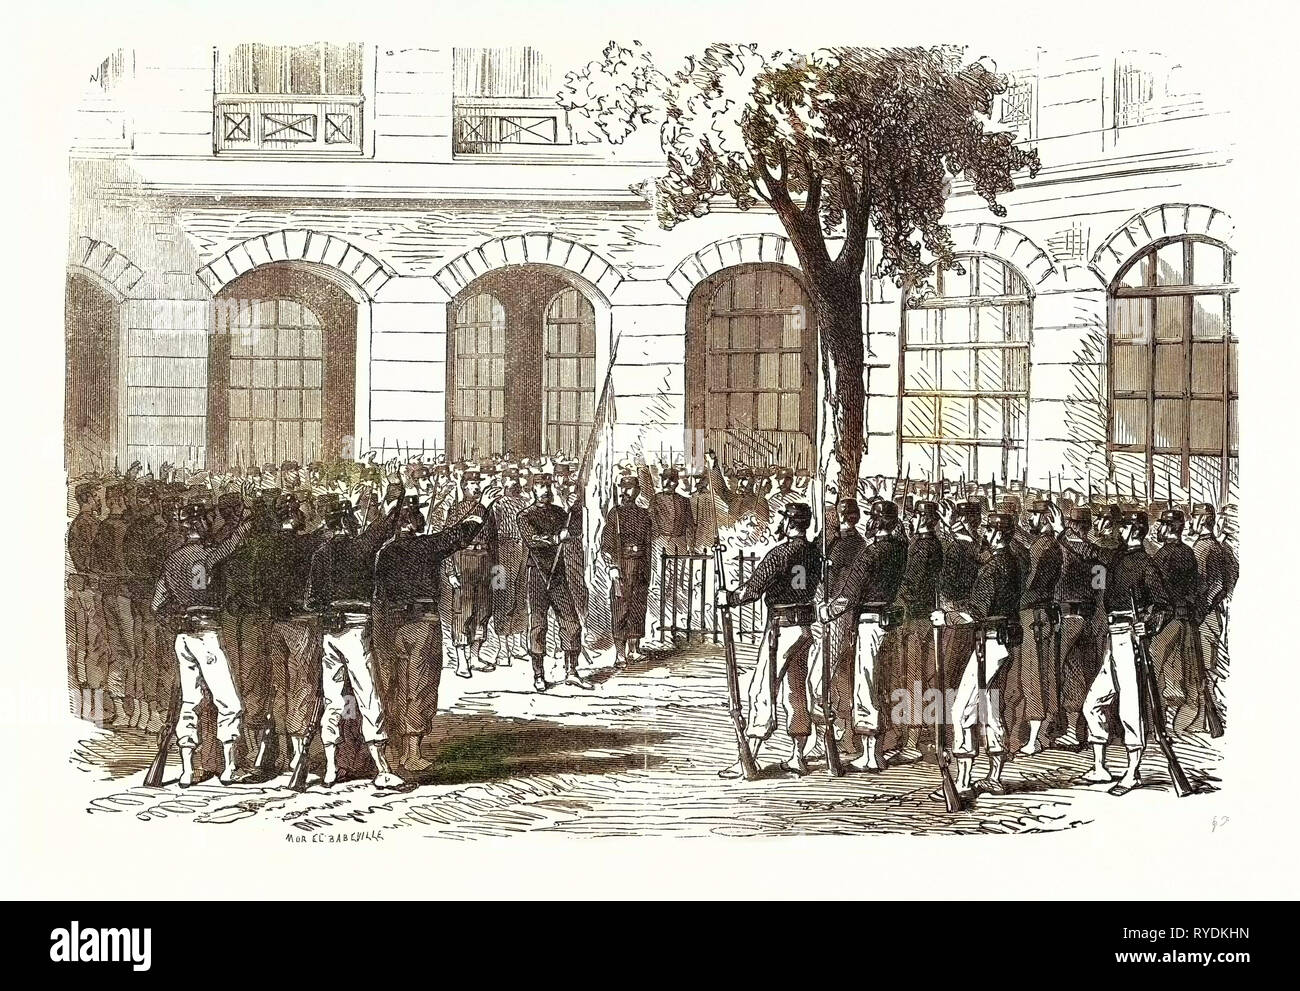 Franco-Prussian War: Francs-Tireurs of Paris Pledge Allegiance to Their Commander Aronsohn and to the Flag, to Conquer or Die. France - Stock Image